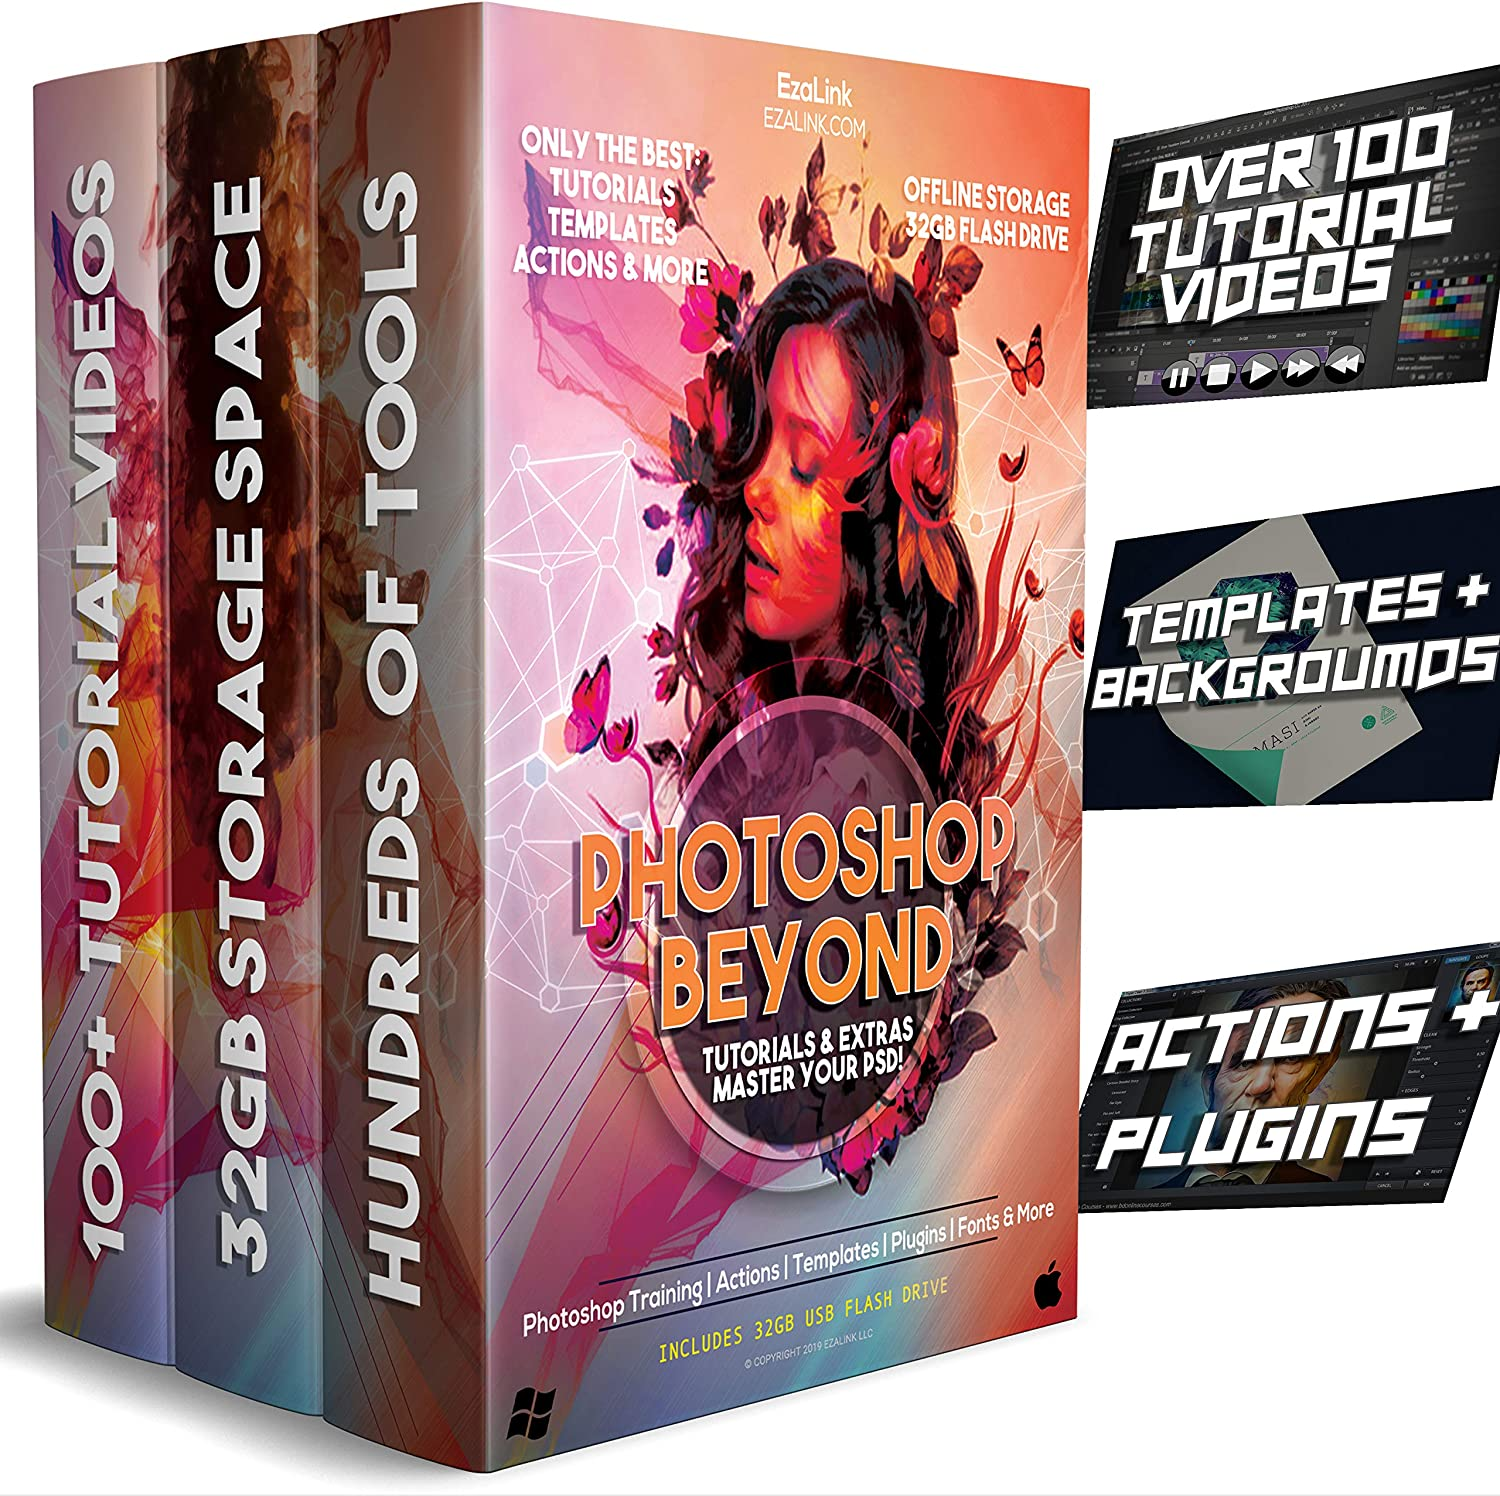 Learn Photoshop Bundle: 100+ Video Tutorials, Accessories, HD Backgrounds, Templates, Fonts, Effects, Actions, Plugins & Guide Book for Beginners & Pro USB - Elements or CC 91smsOw5sXL